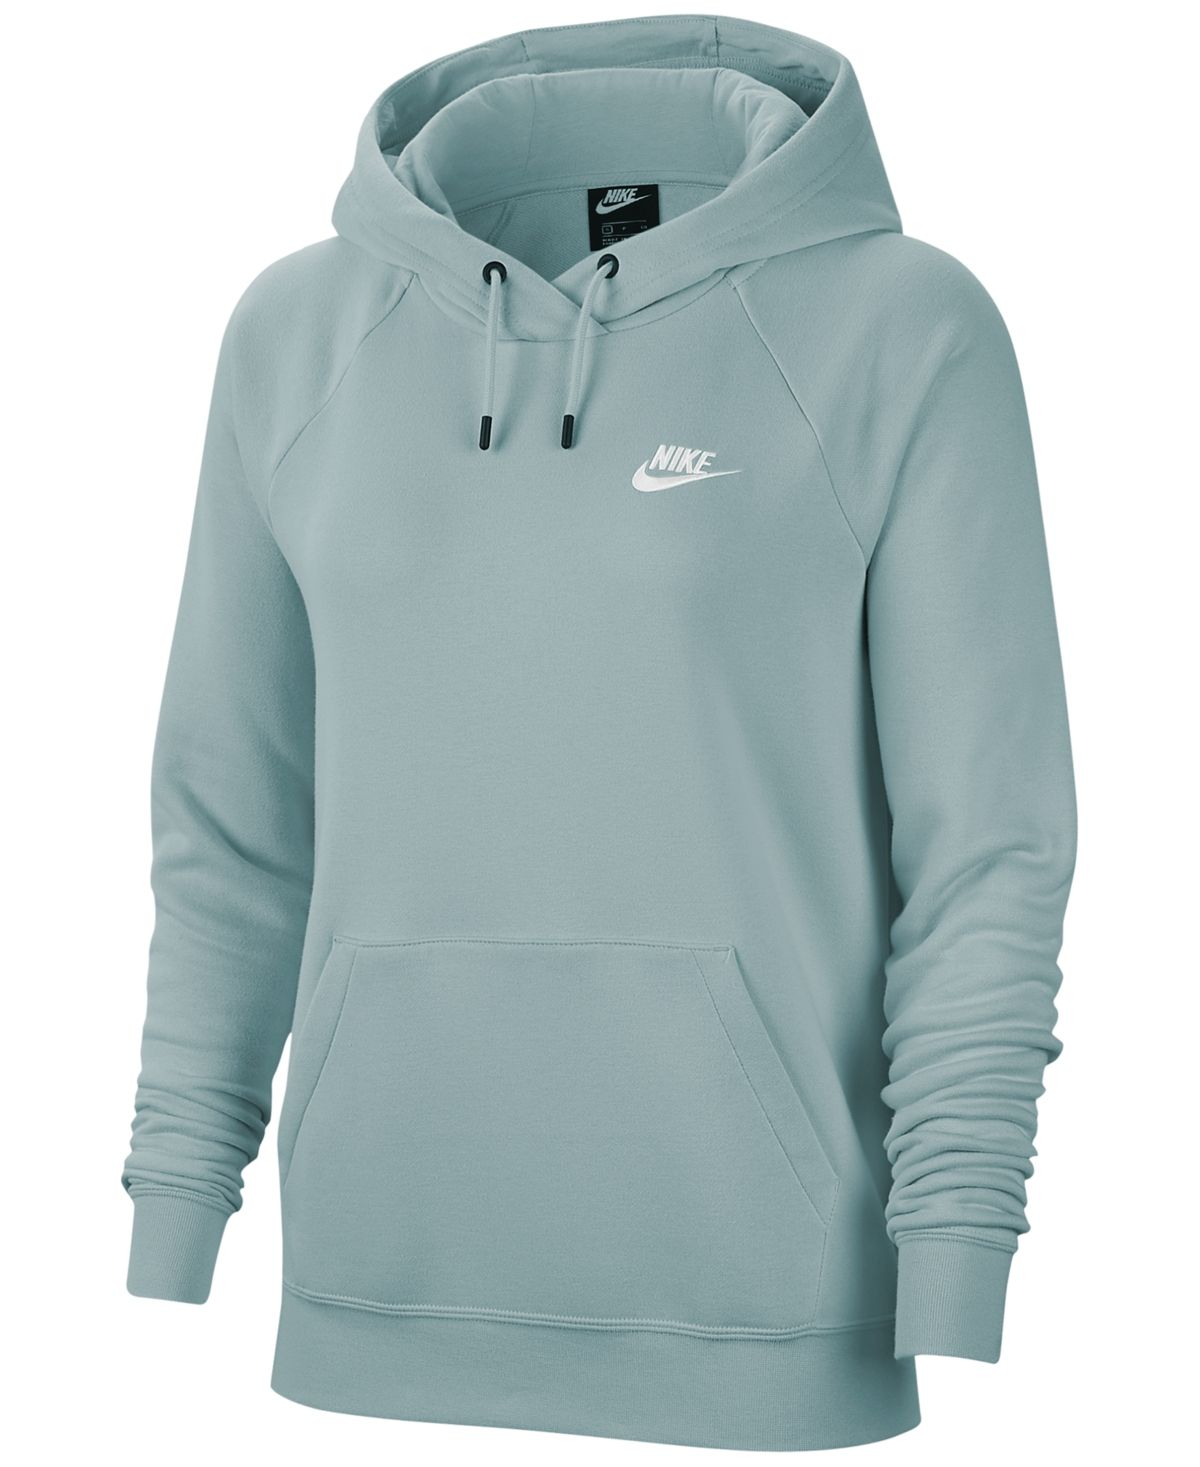 Pin By Karlie Harris On Ropaa In 2020 Nike Hoodies For Women Sportswear Women Nike Women